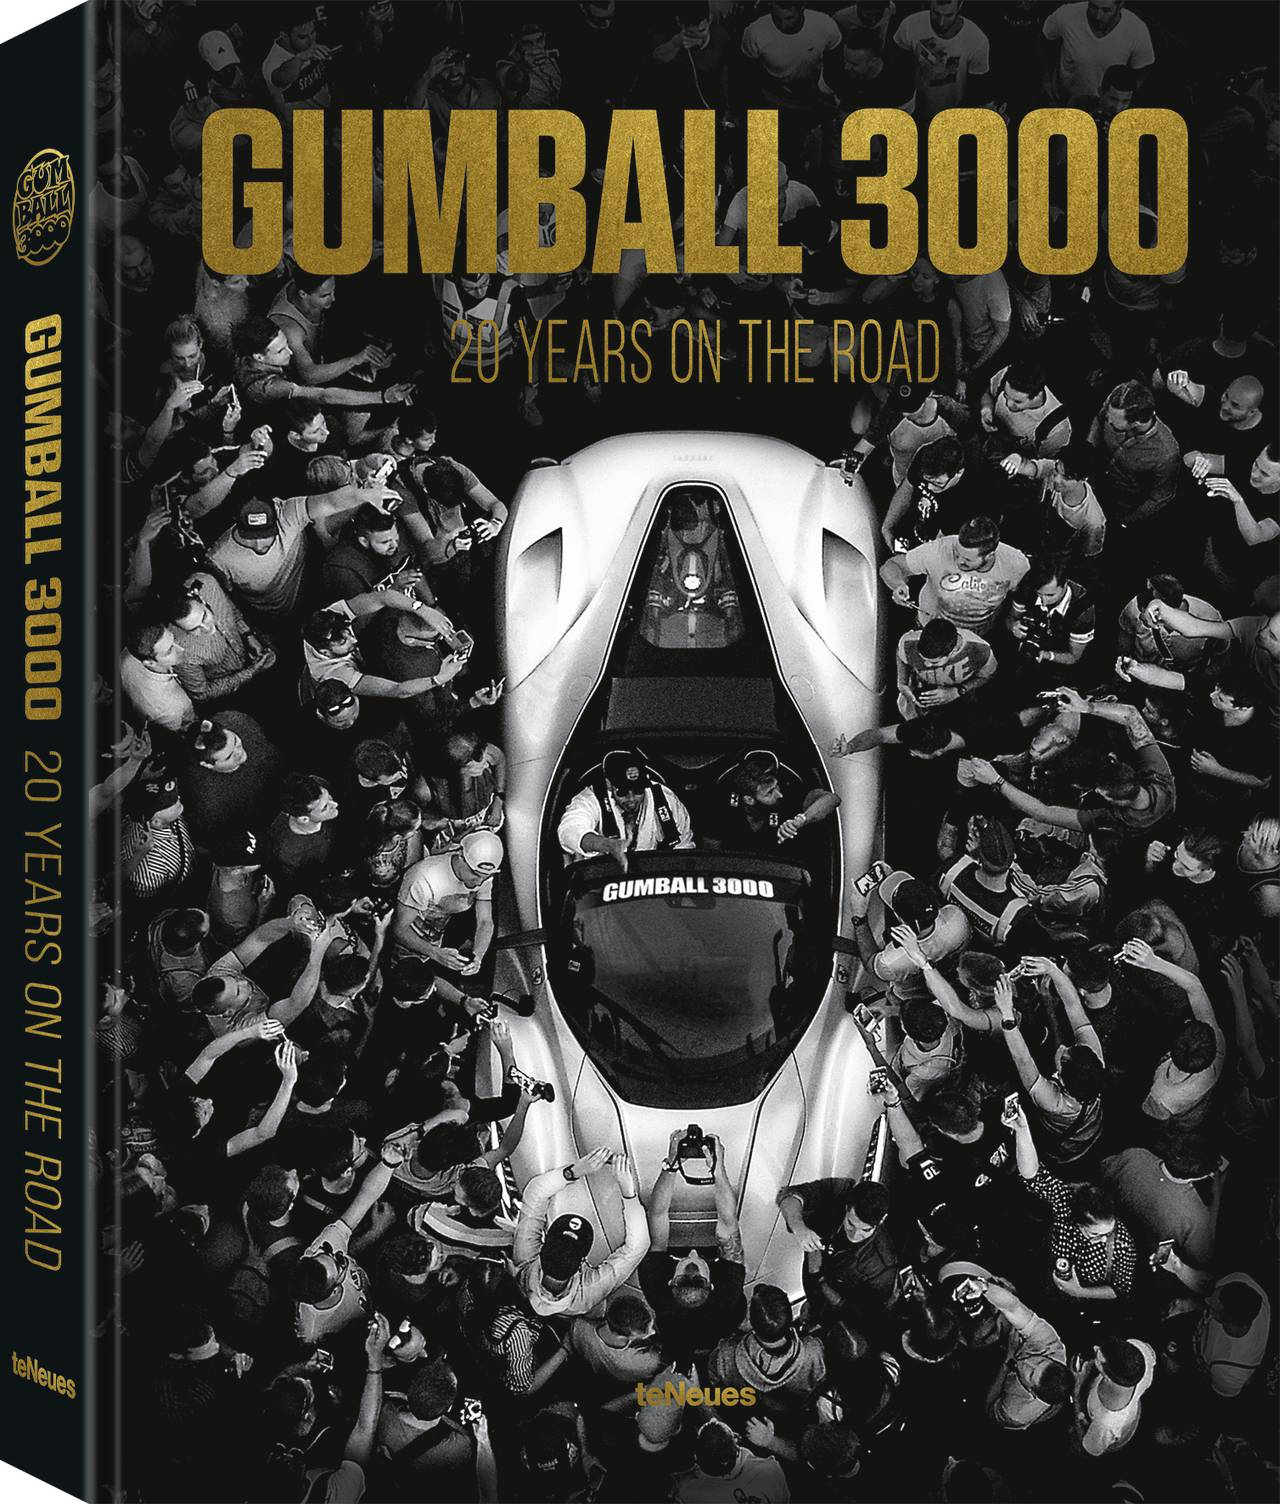 © Limited Edition Gumball 3000 - 20 Years on the Road, published by teNeues, www.teneues.com,  Photo © Sabin Stanescu